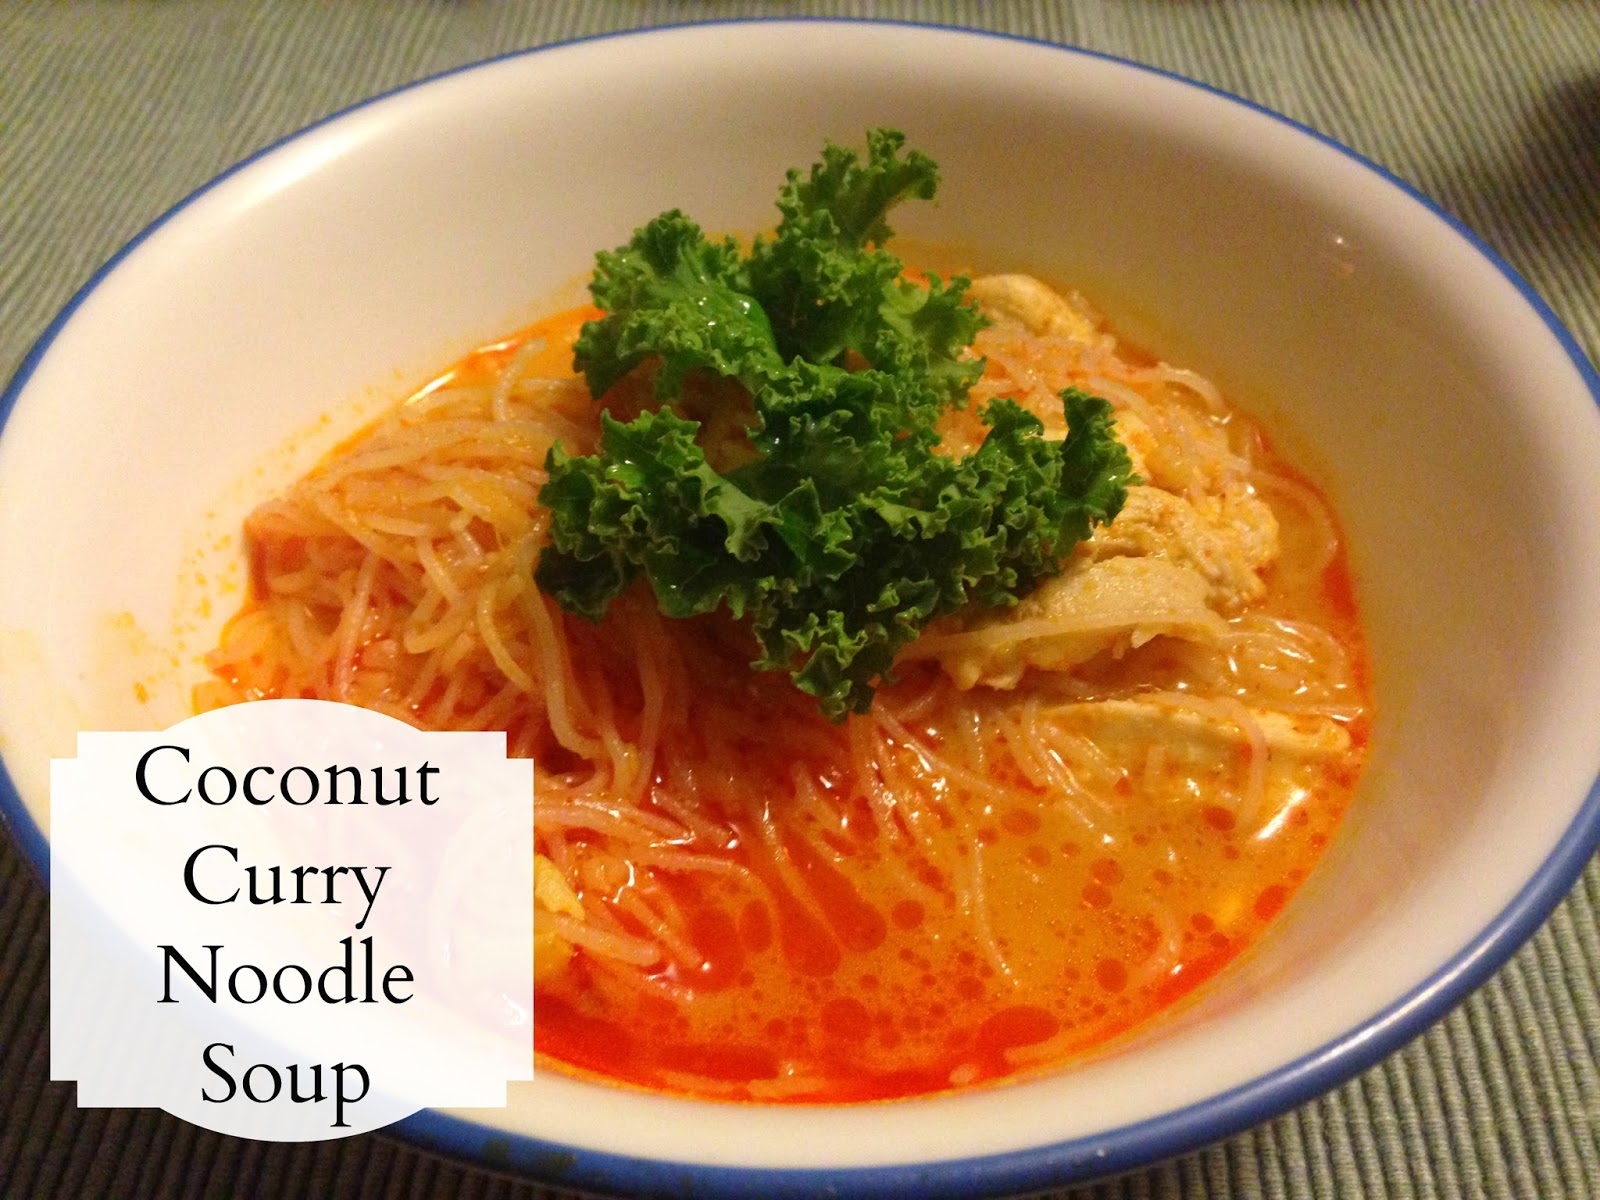 THE REHOMESTEADERS: Coconut Curry Noodle Soup